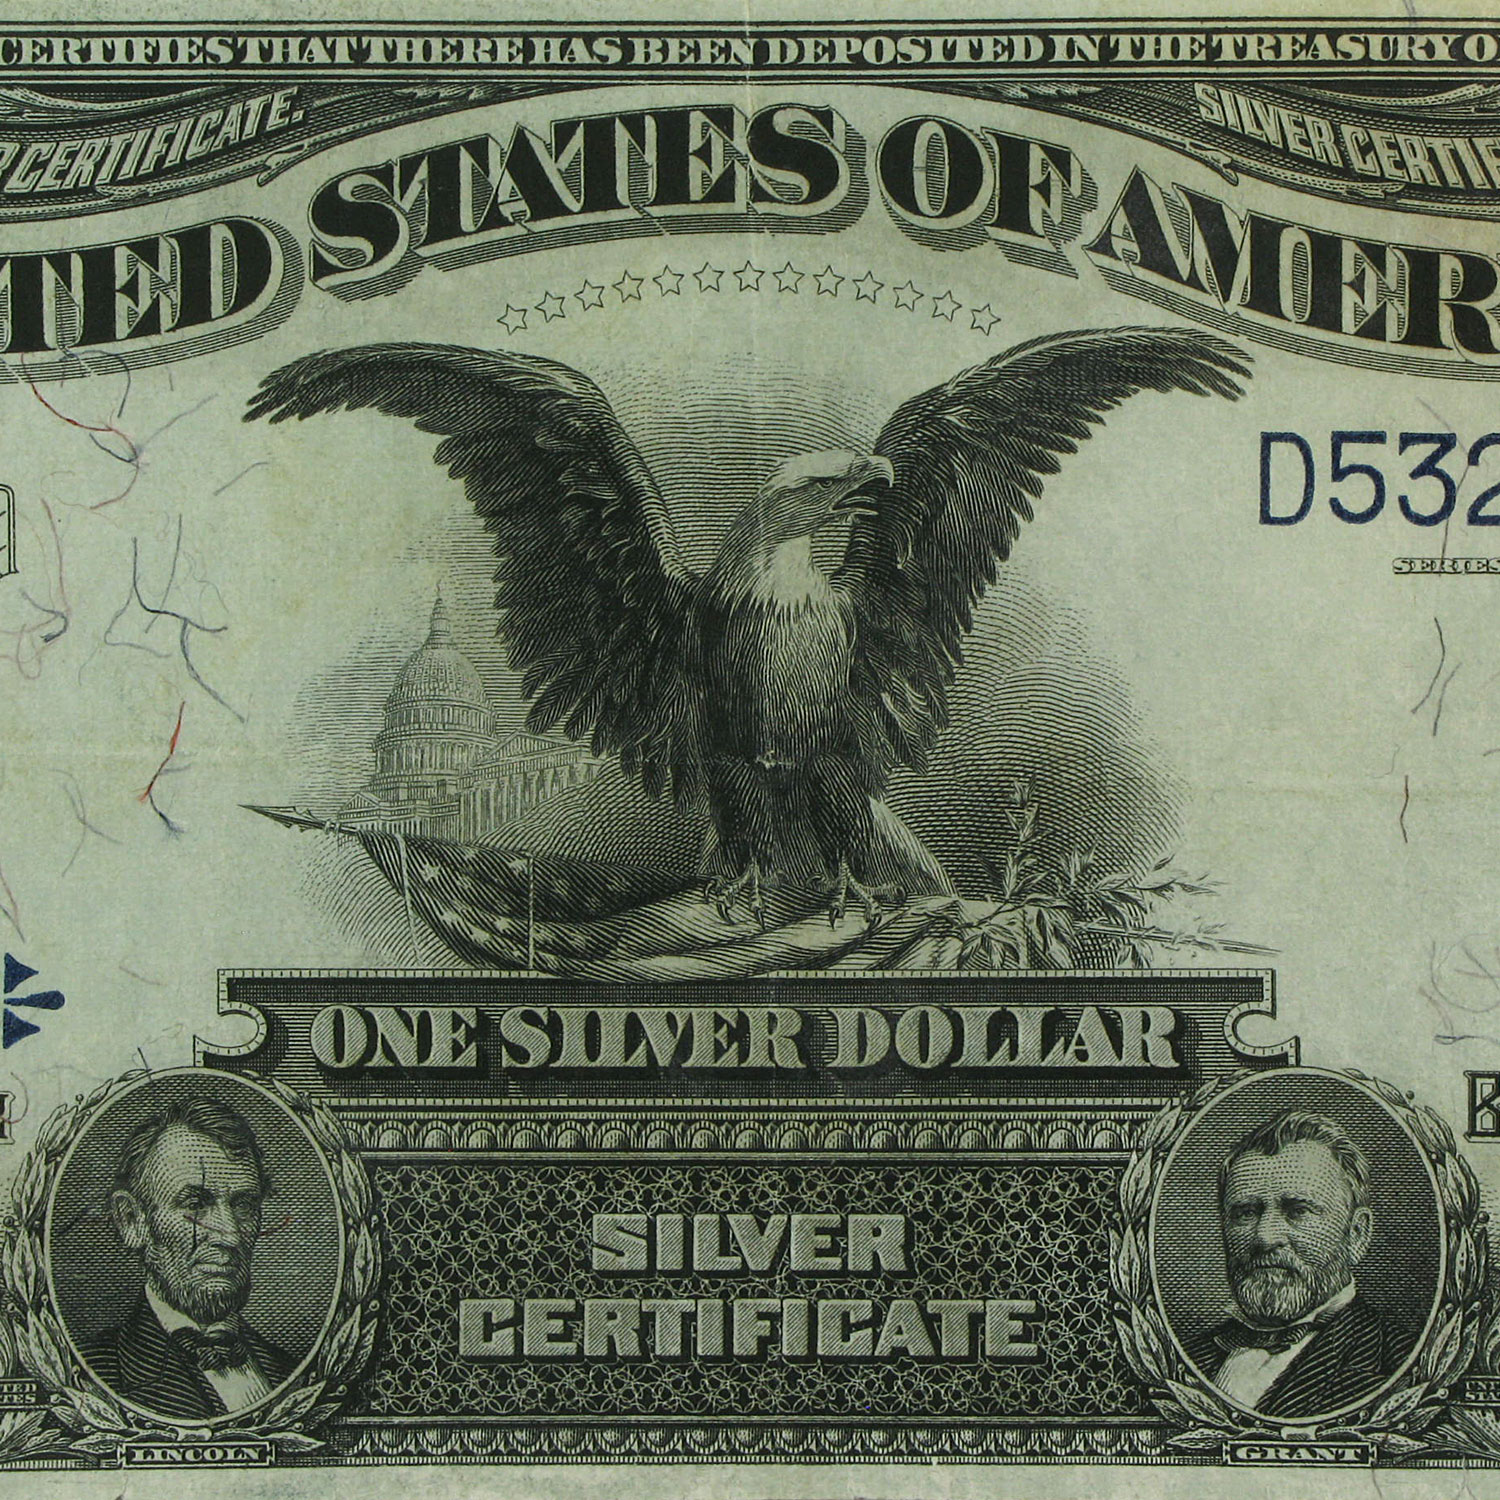 1899 $1.00 Silver Certificate Black Eagle (Very Fine) +)